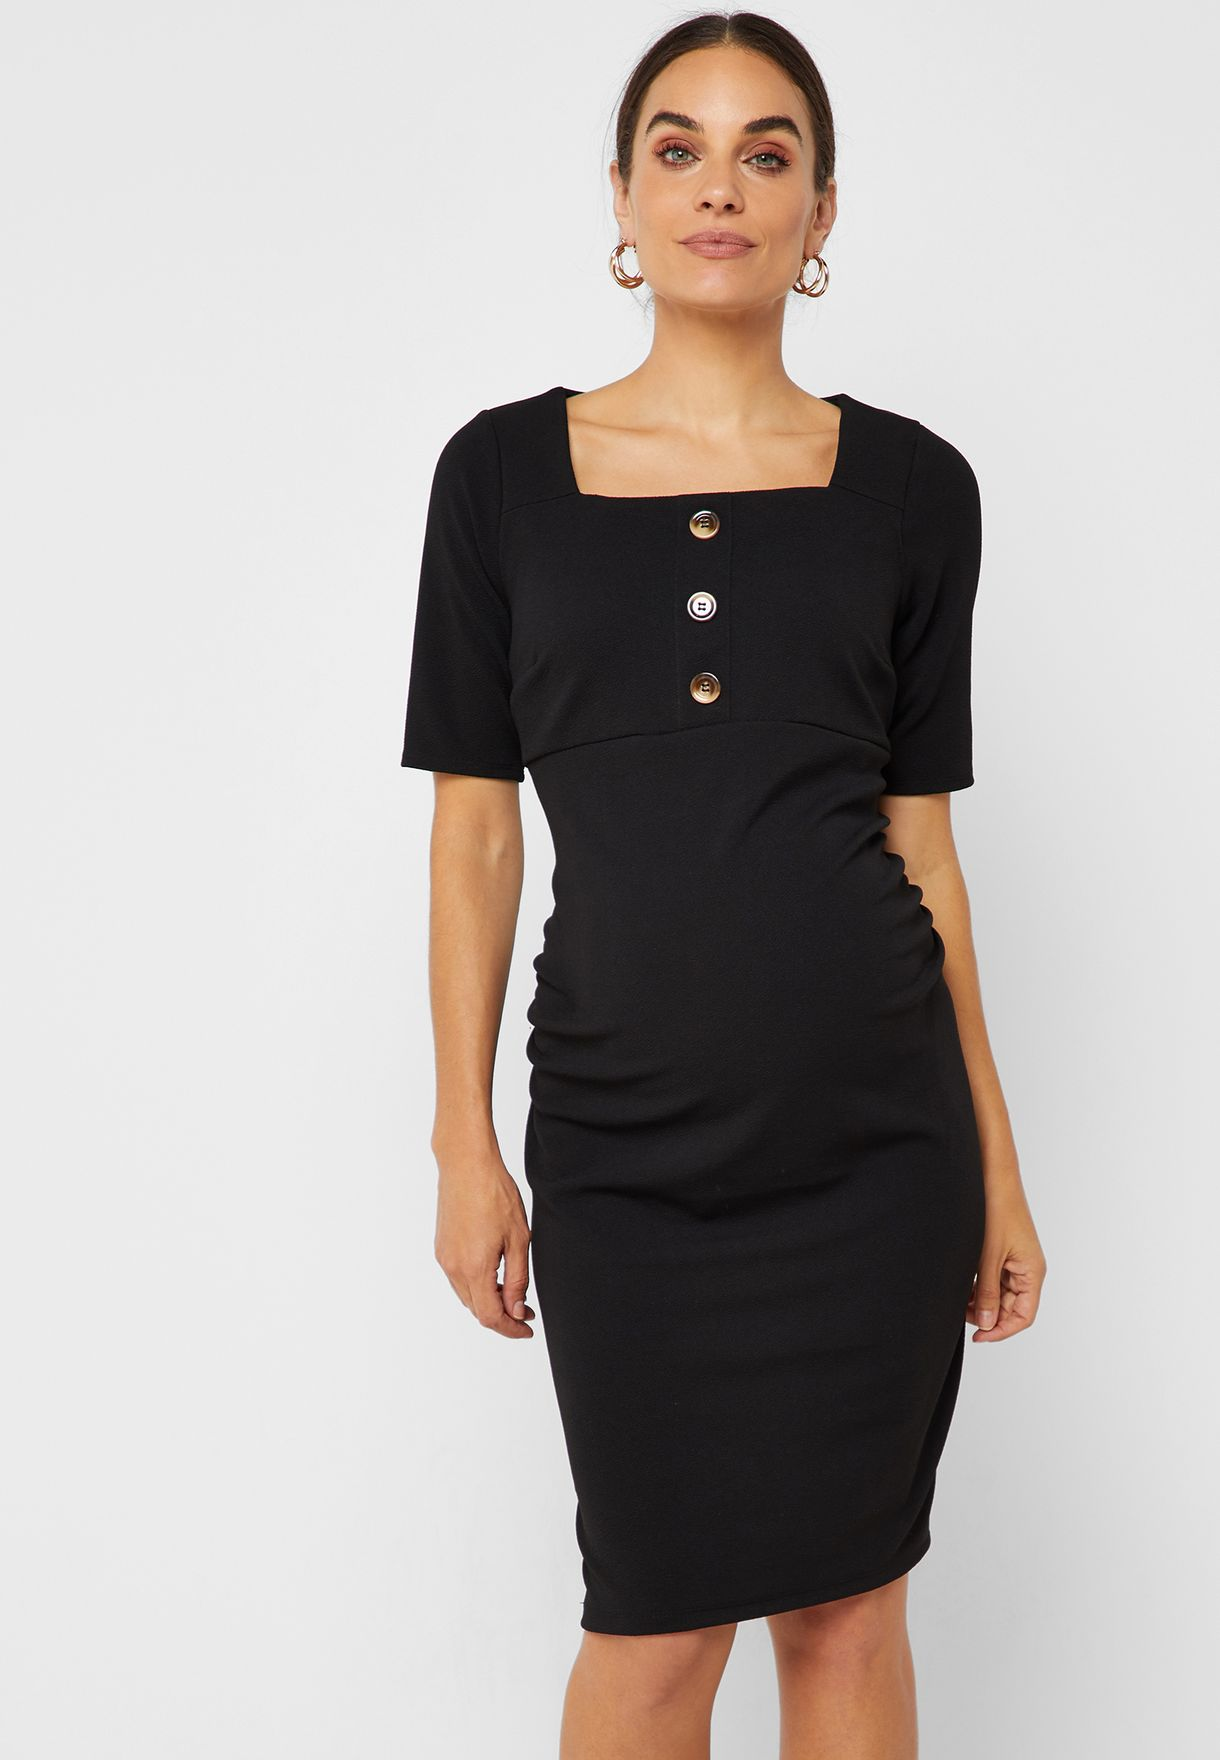 a689cad222358 Shop Dorothy Perkins Maternity black Square Neck Button Front ...